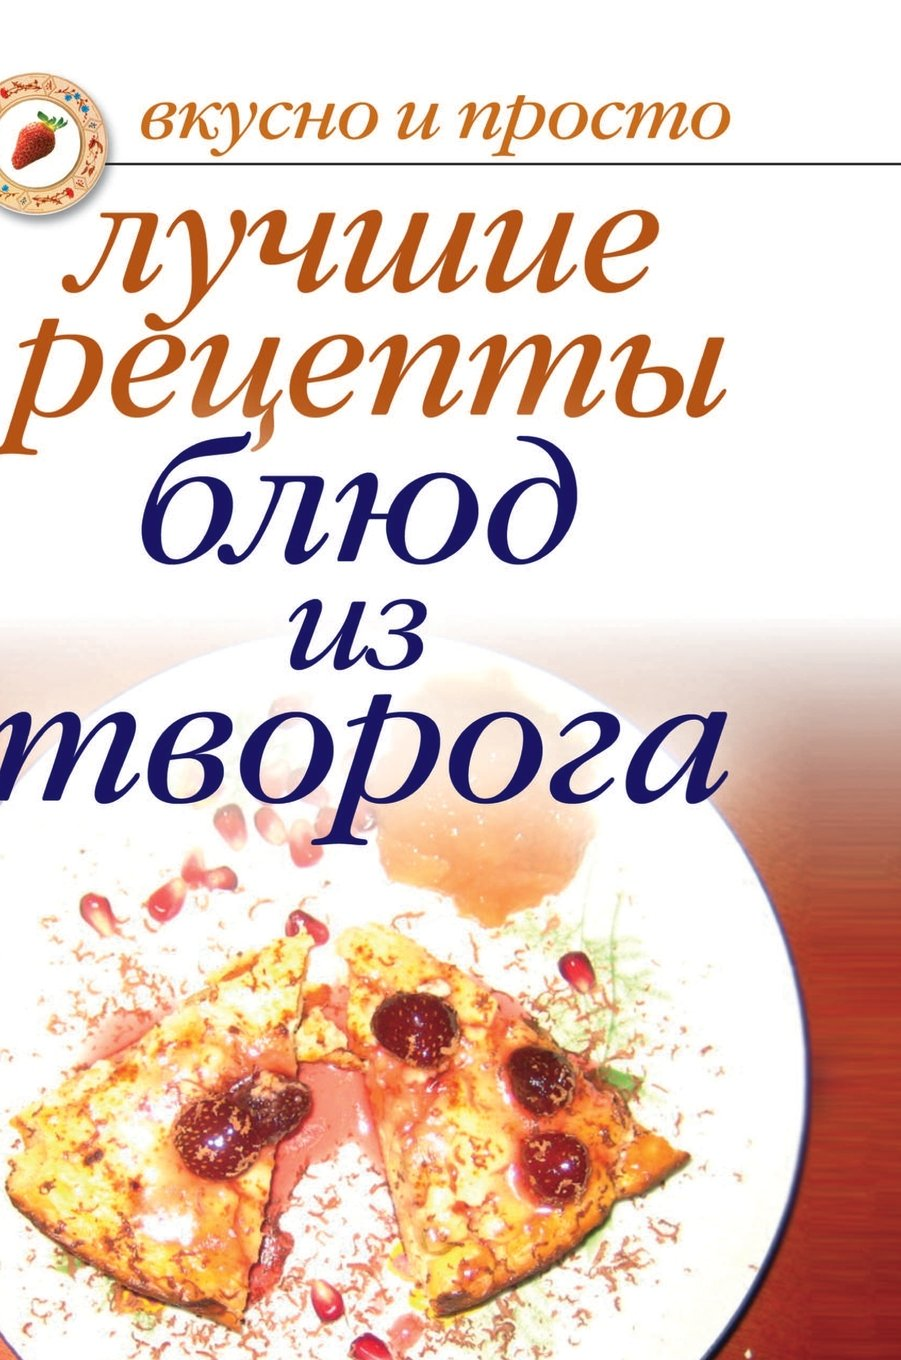 Read Online The best recipes of dishes from cottage cheese (Russian Edition) pdf